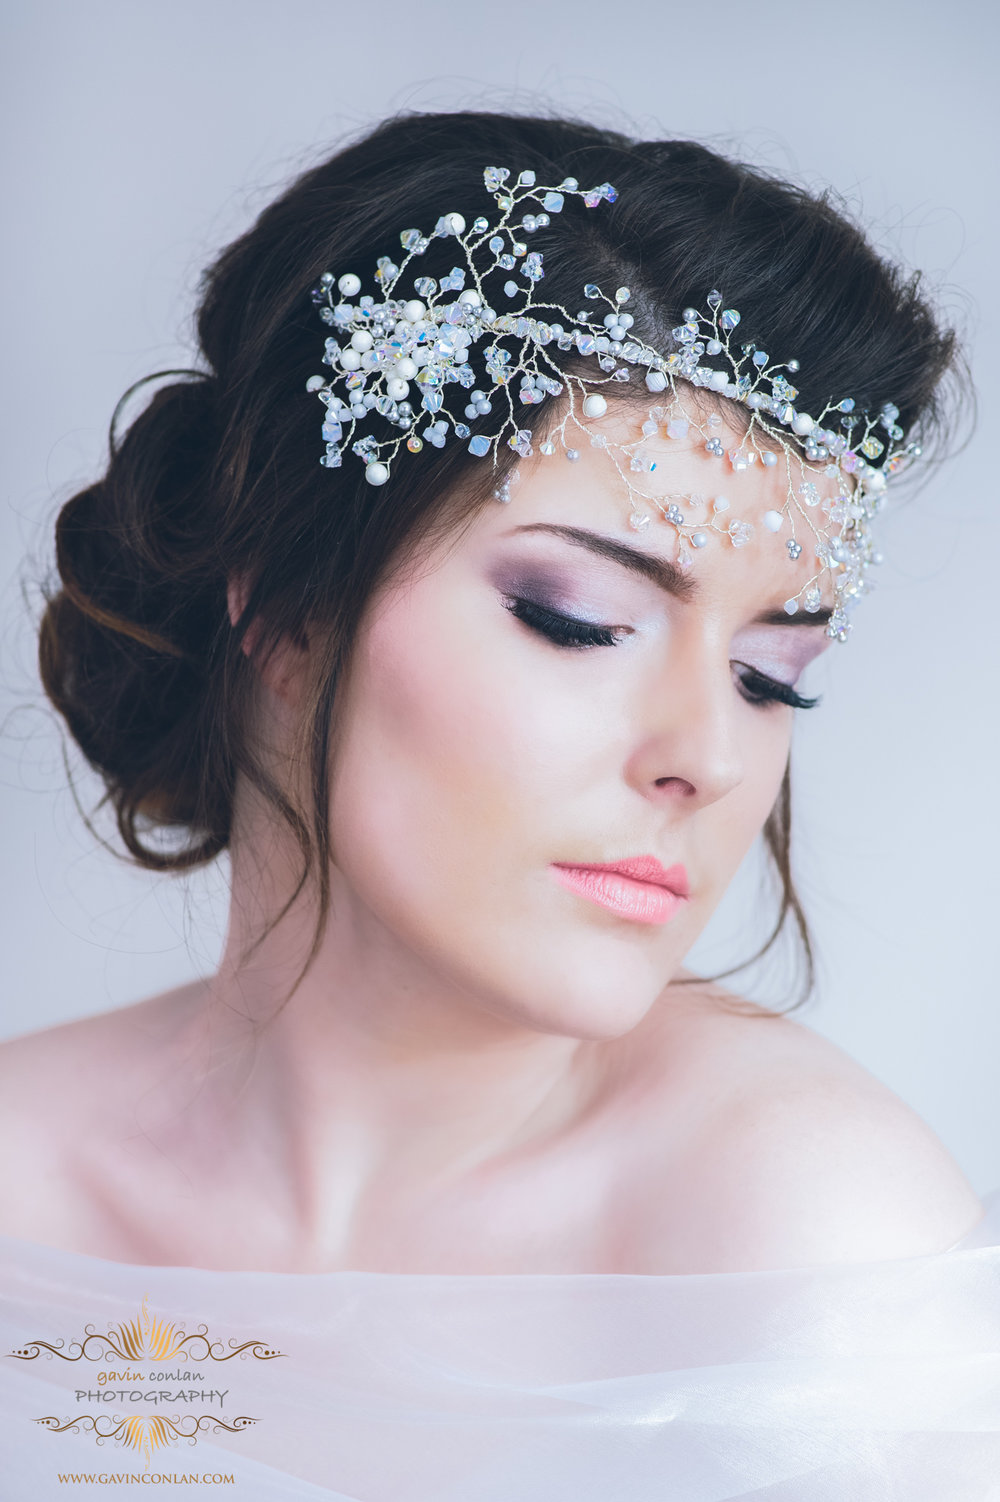 creative-bridal-hair-make-up-jewellery-photo-shoot-gavinconlanphotography-18